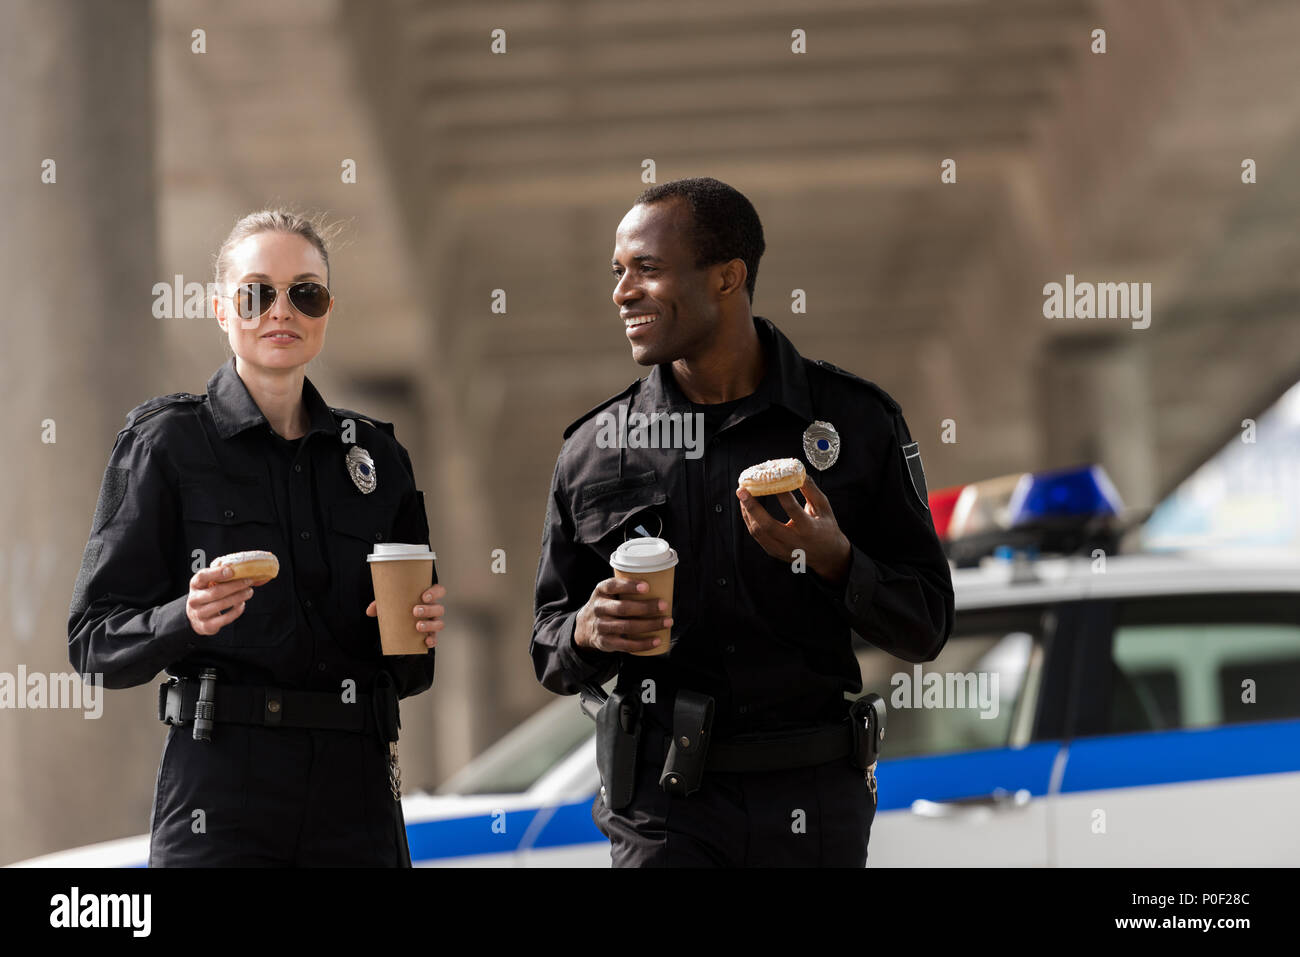 smiling police officers having coffee break with doughnuts - Stock Image